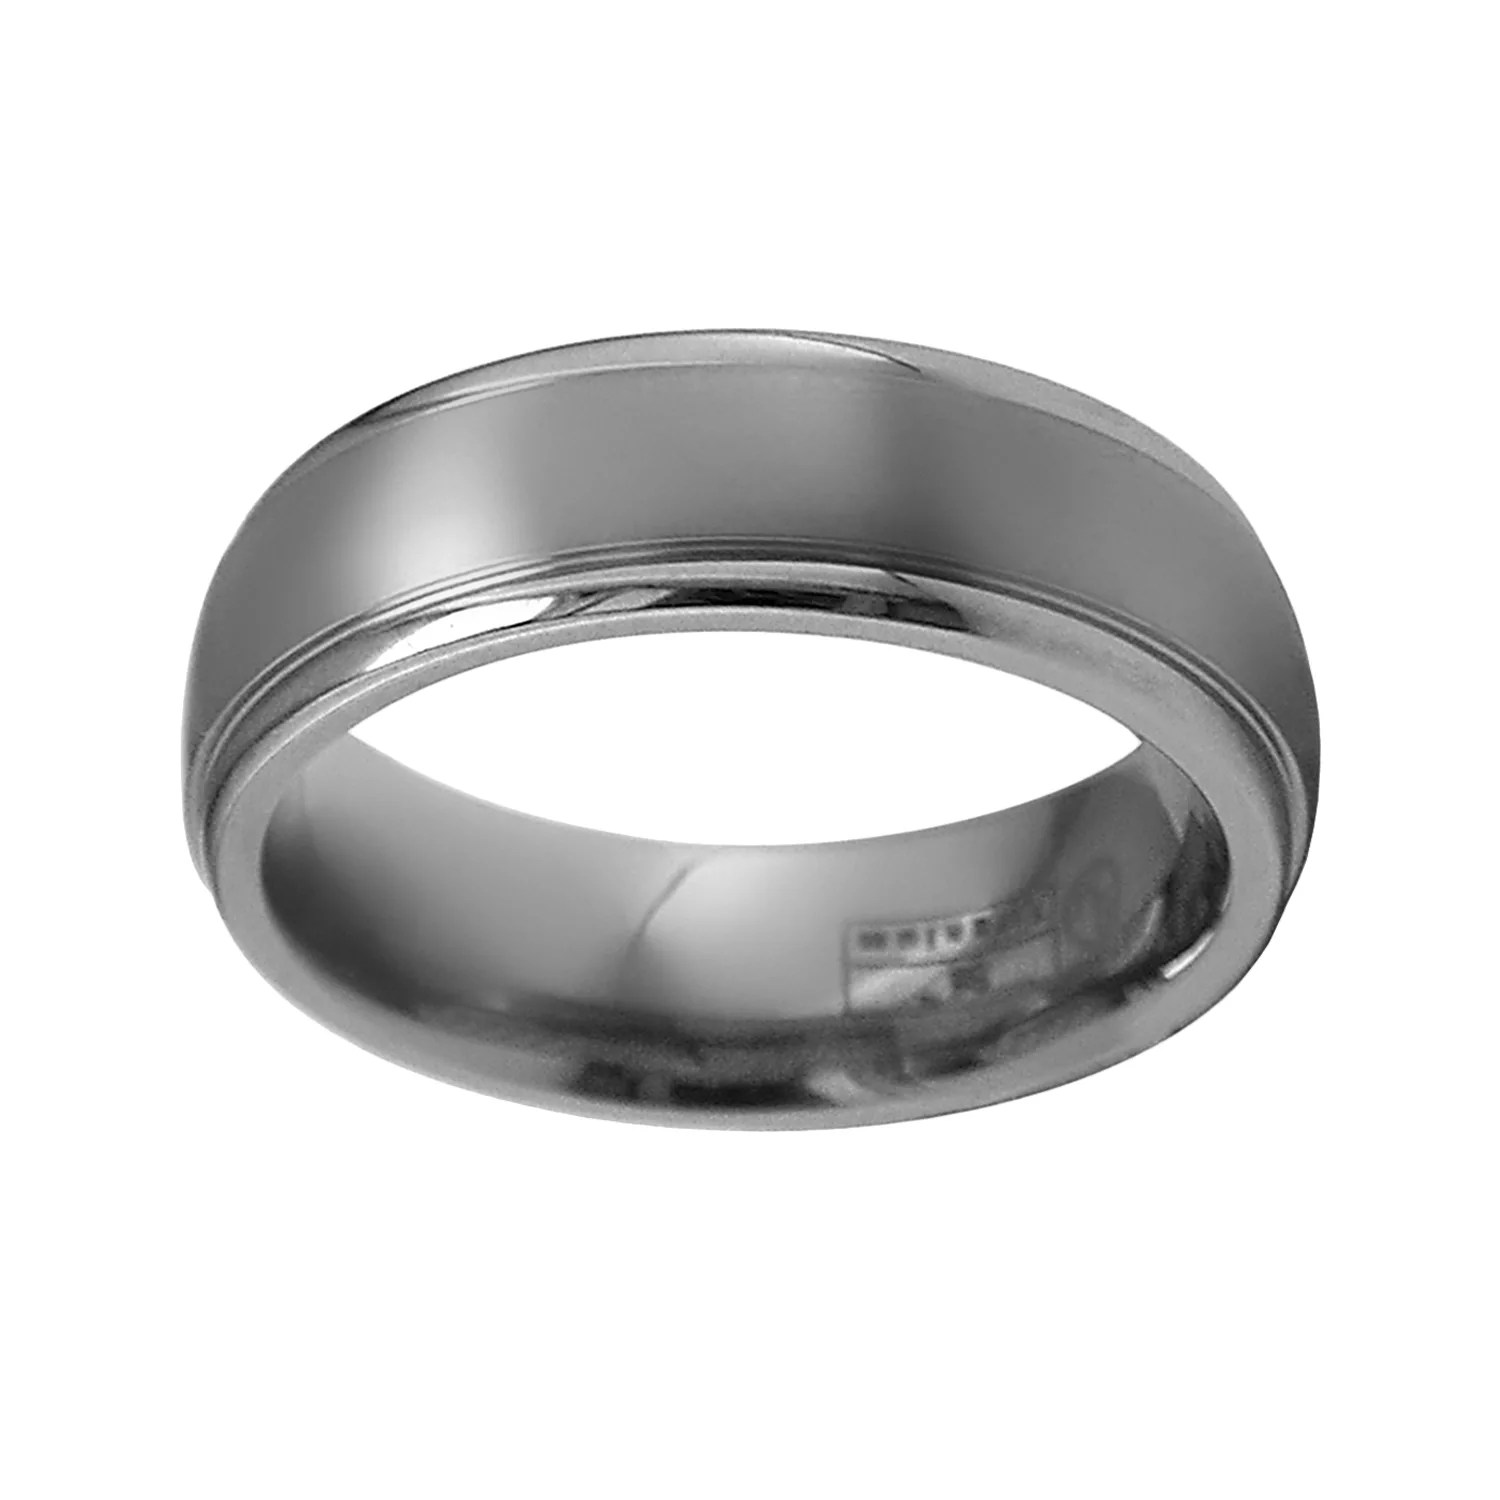 mens titanium wedding bands rings jewelry kohl's wedding rings STI by Spectore Gray Titanium Striped Wedding Band Men